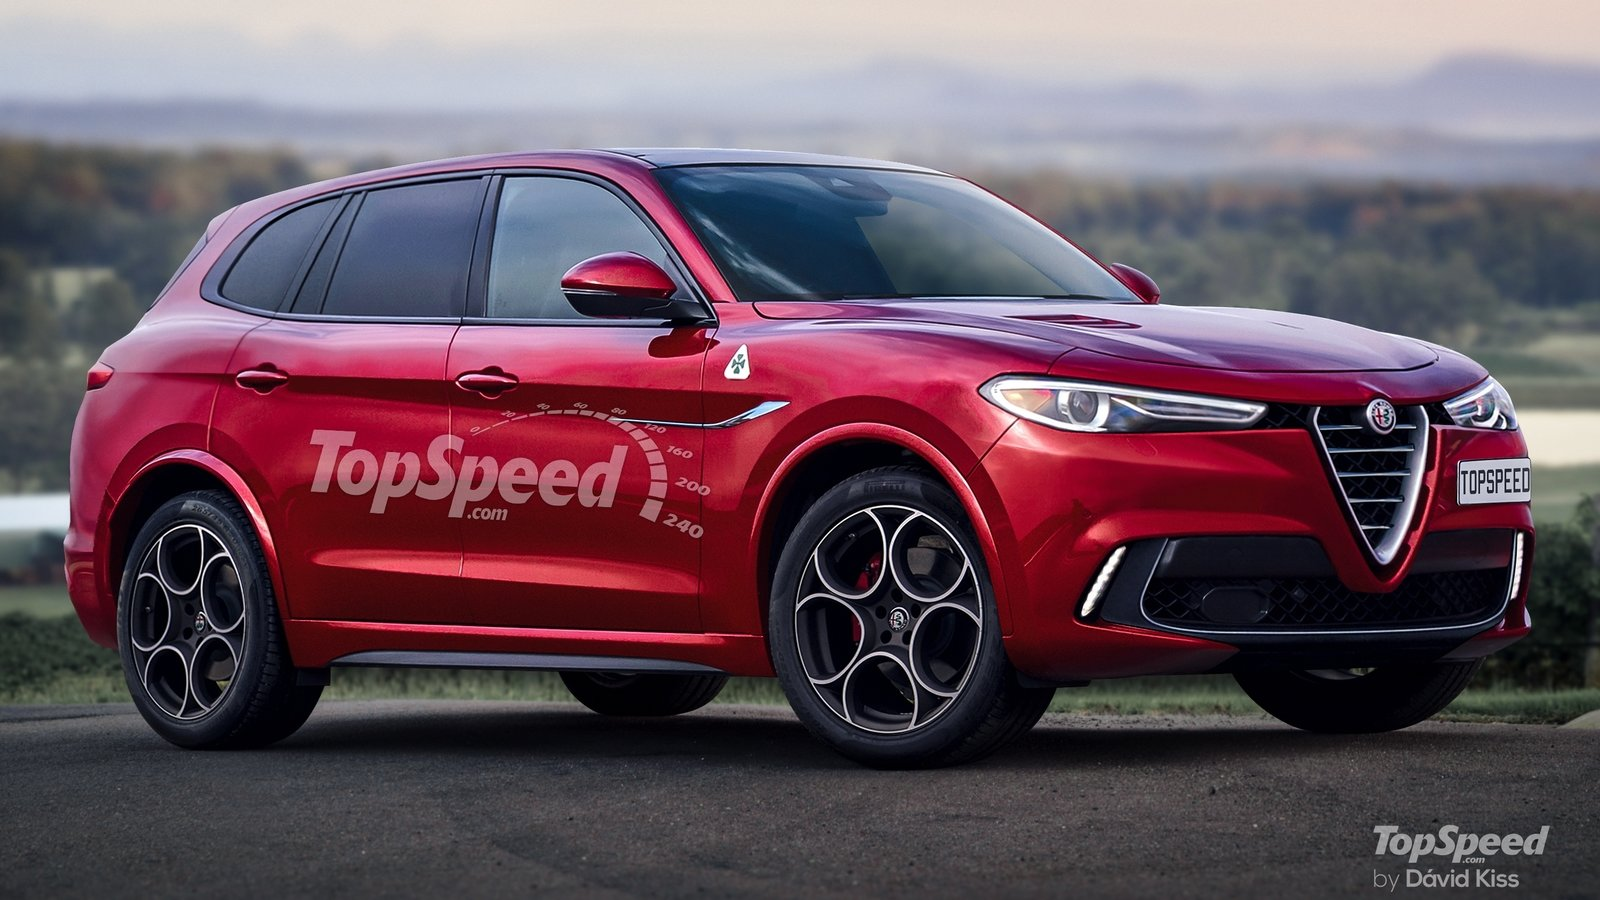 2023 Alfa Romeo Large SUV | Top Speed